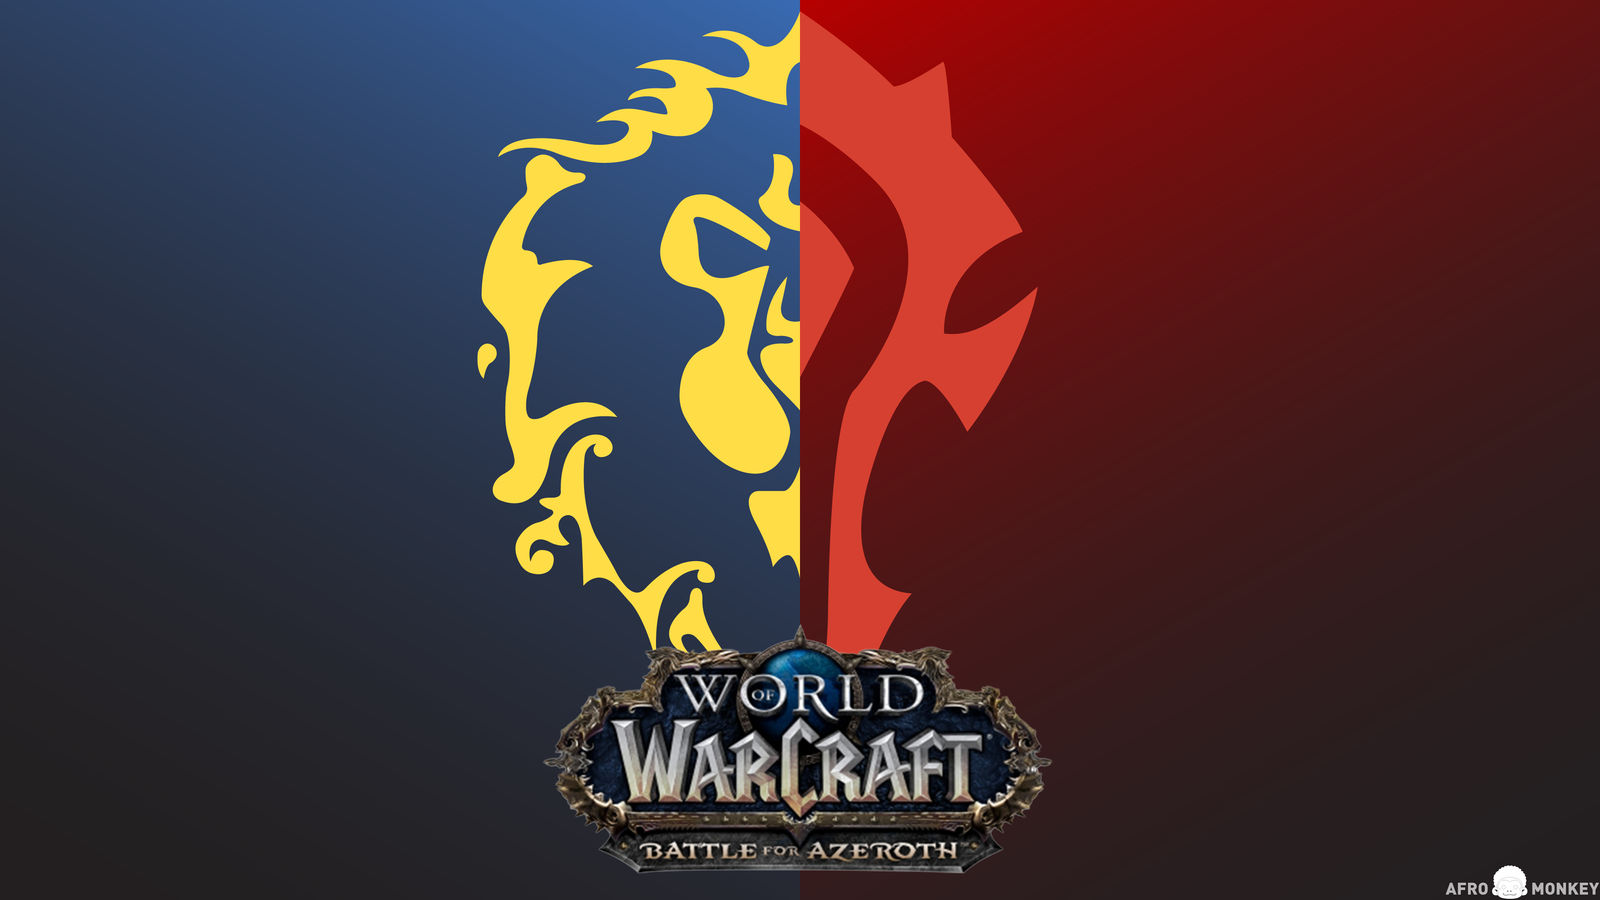 World Of Warcraft Battle For Azeroth By Theafromonkey On Deviantart